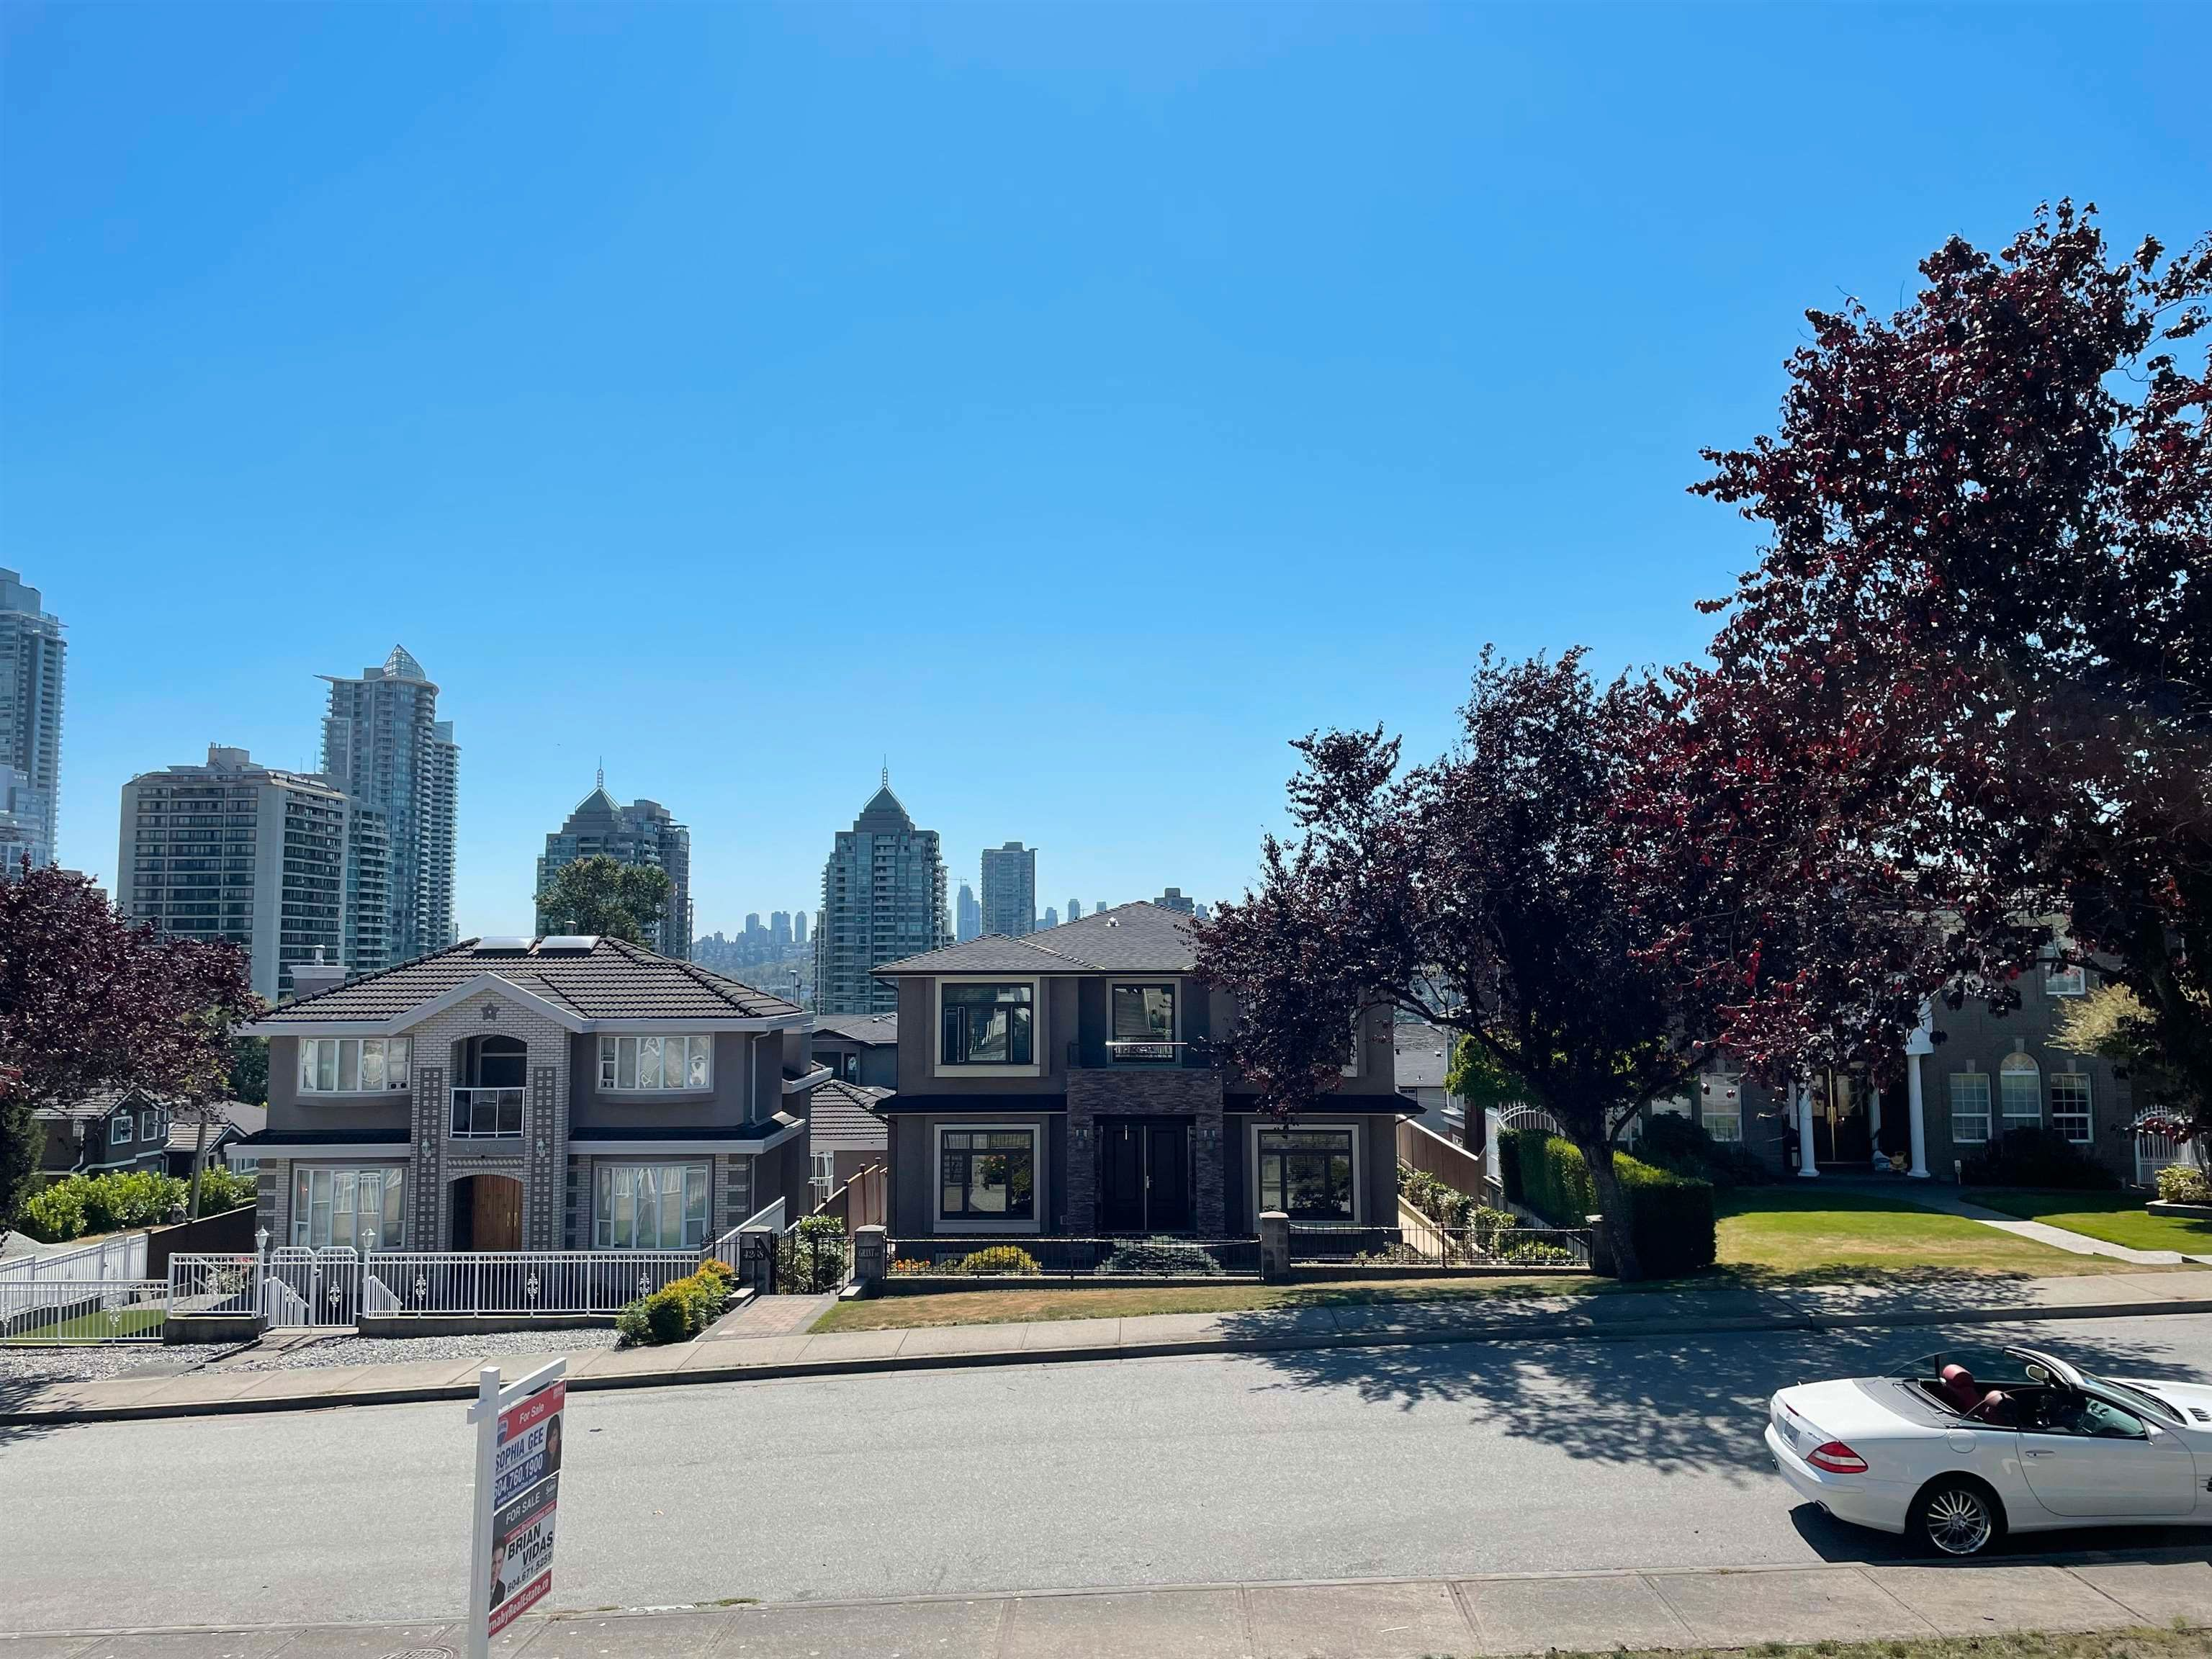 Main Photo: 4269 GRANT Street in Burnaby: Willingdon Heights House for sale (Burnaby North)  : MLS®# R2604743